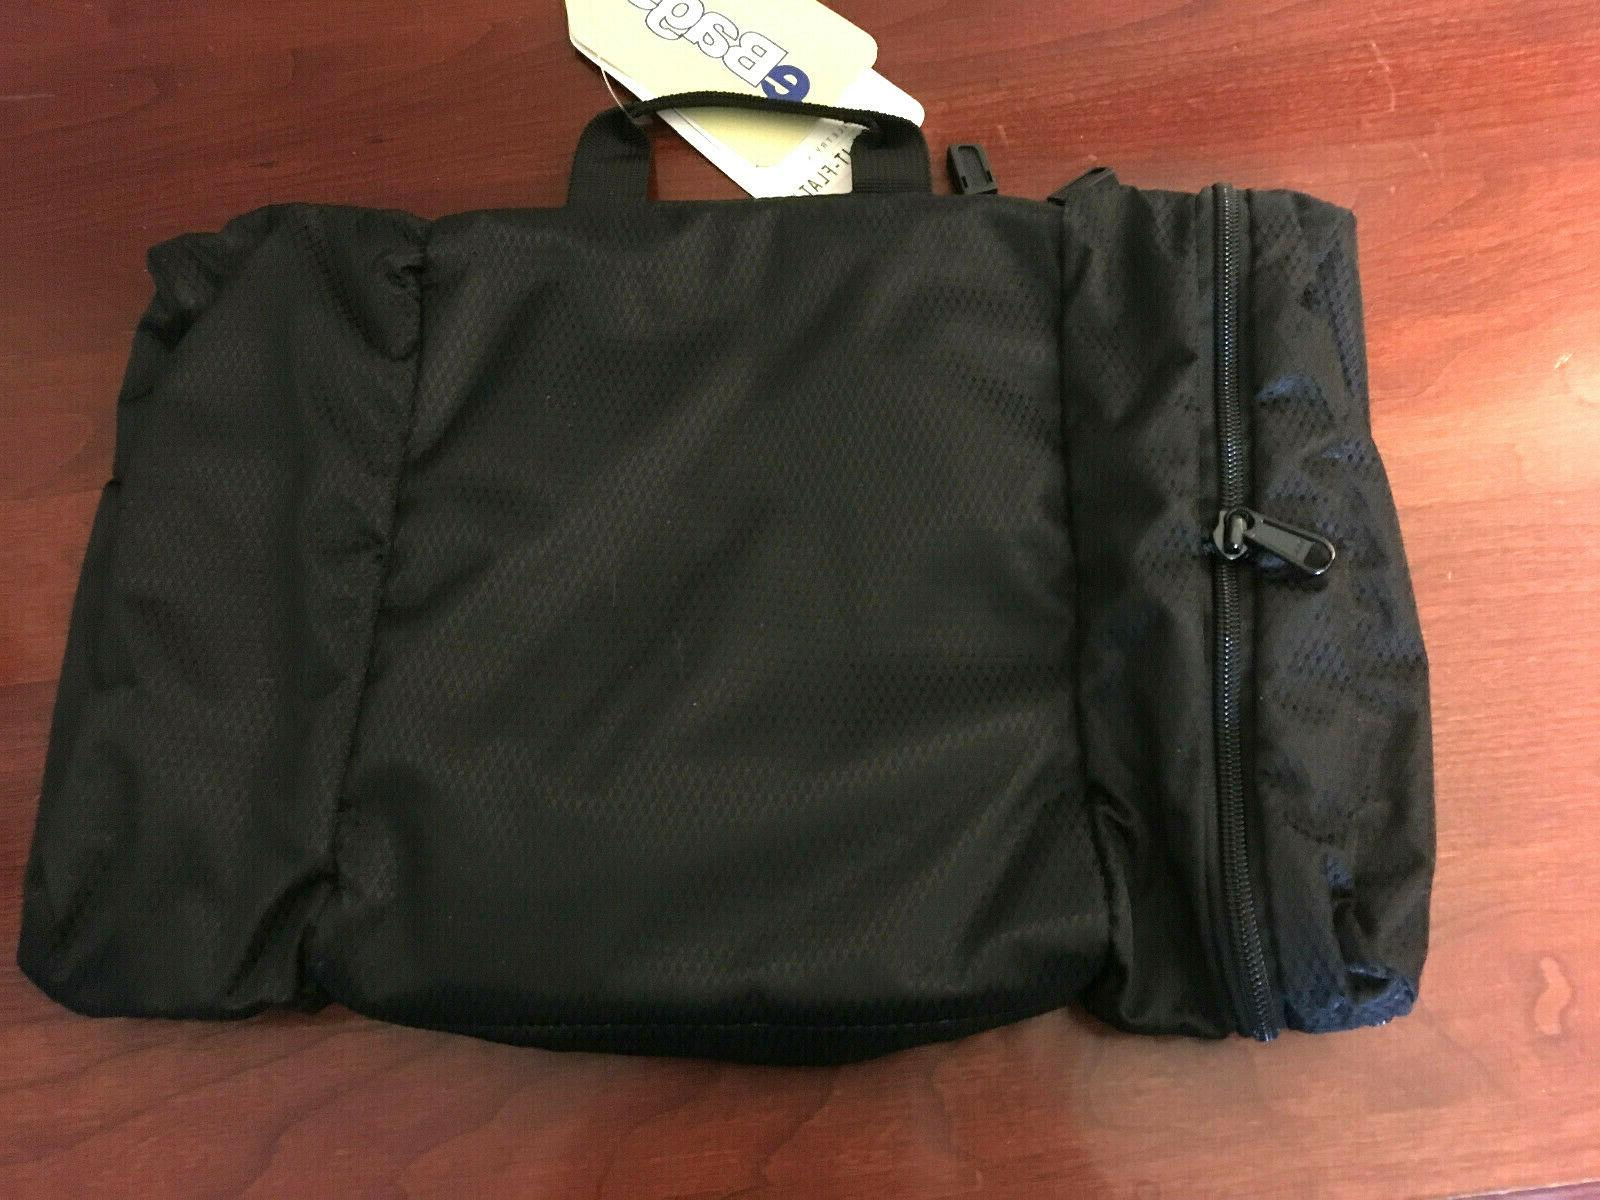 Ebags Large Black It Hanging Kit Travel 2101 NWT